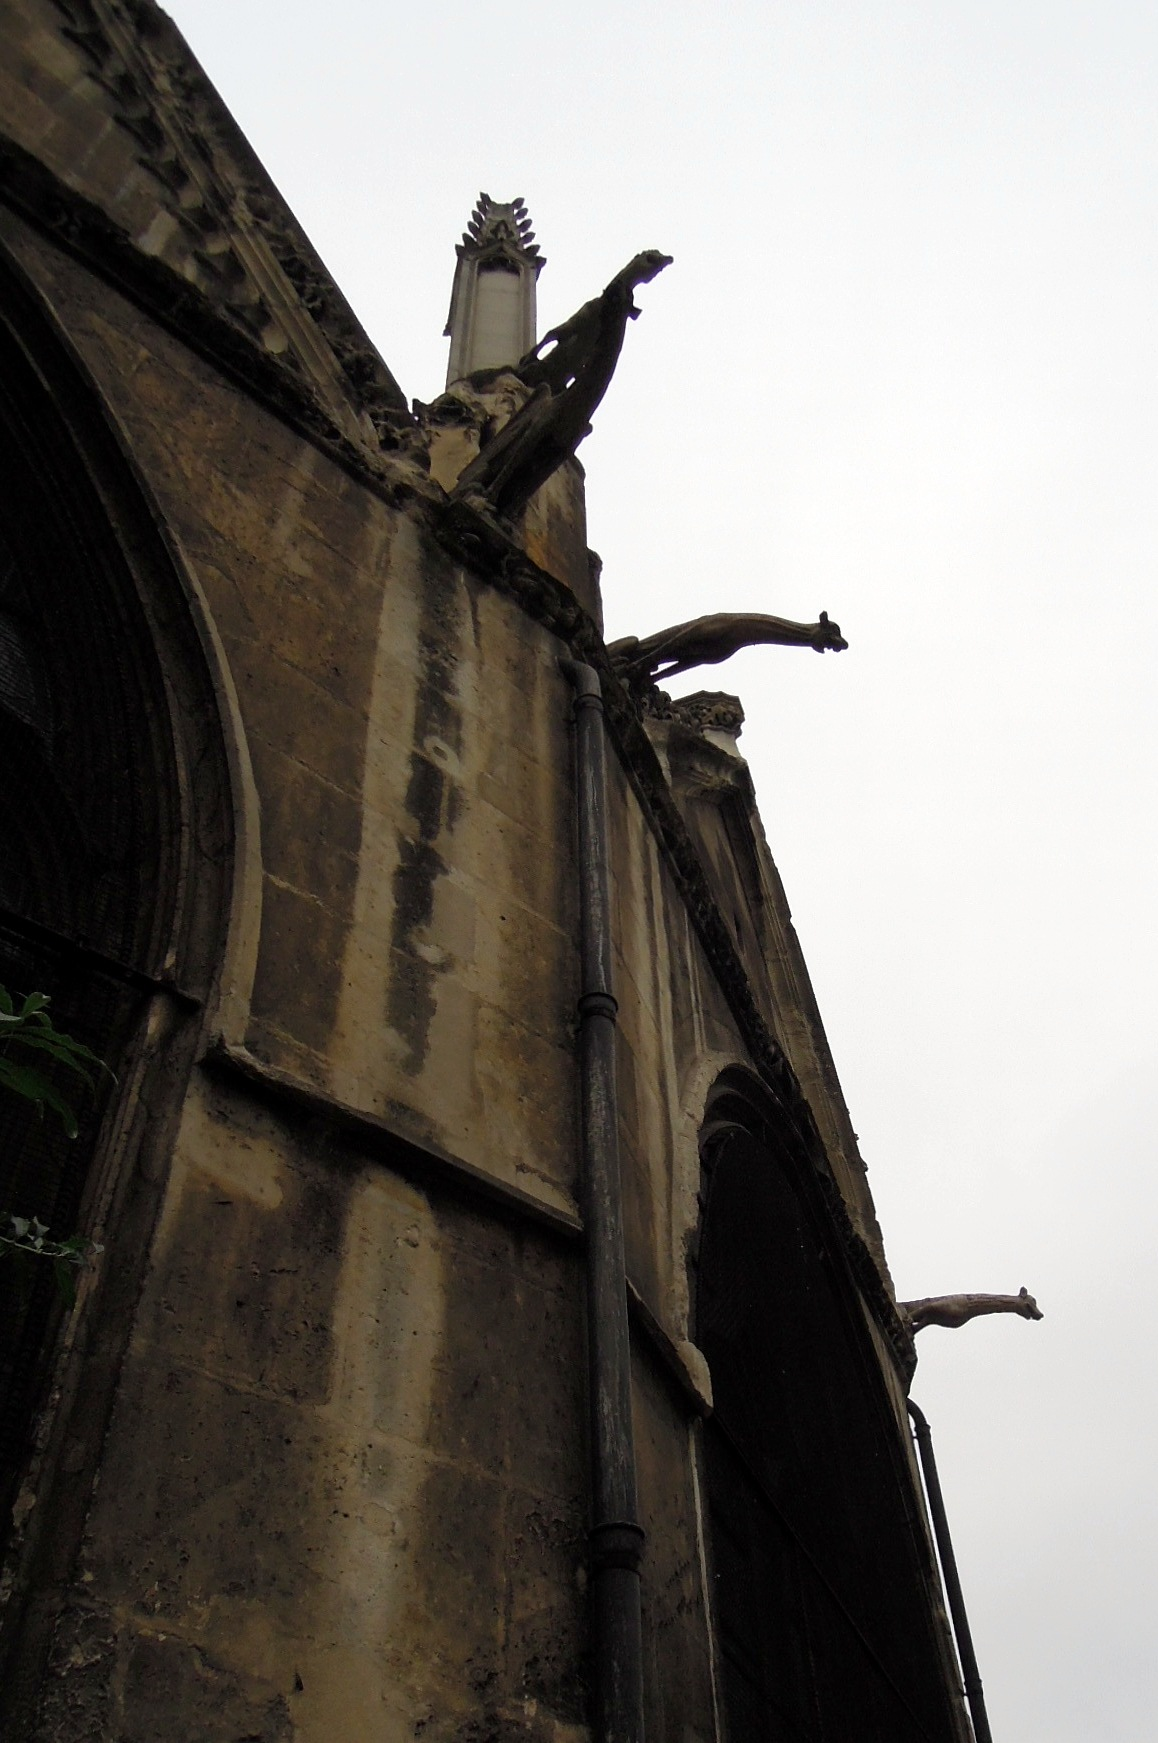 Gargoyles leaning outward from the roof